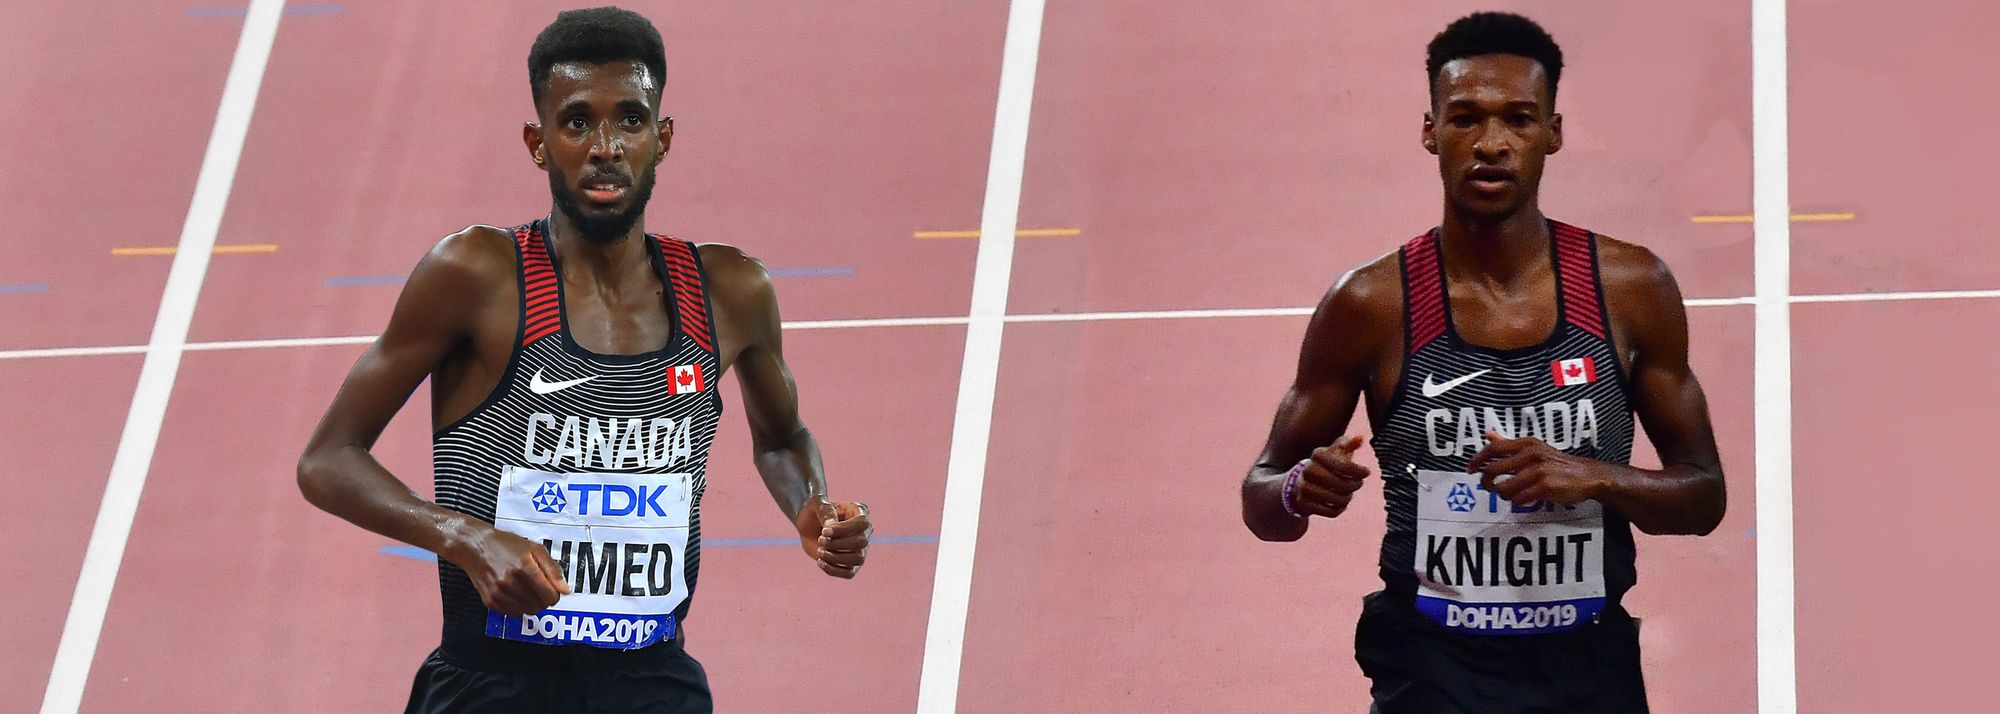 Moh Ahmed and Justyn Knight will be looking to pack a 1-2 punch at the Olympic Games in Tokyo.